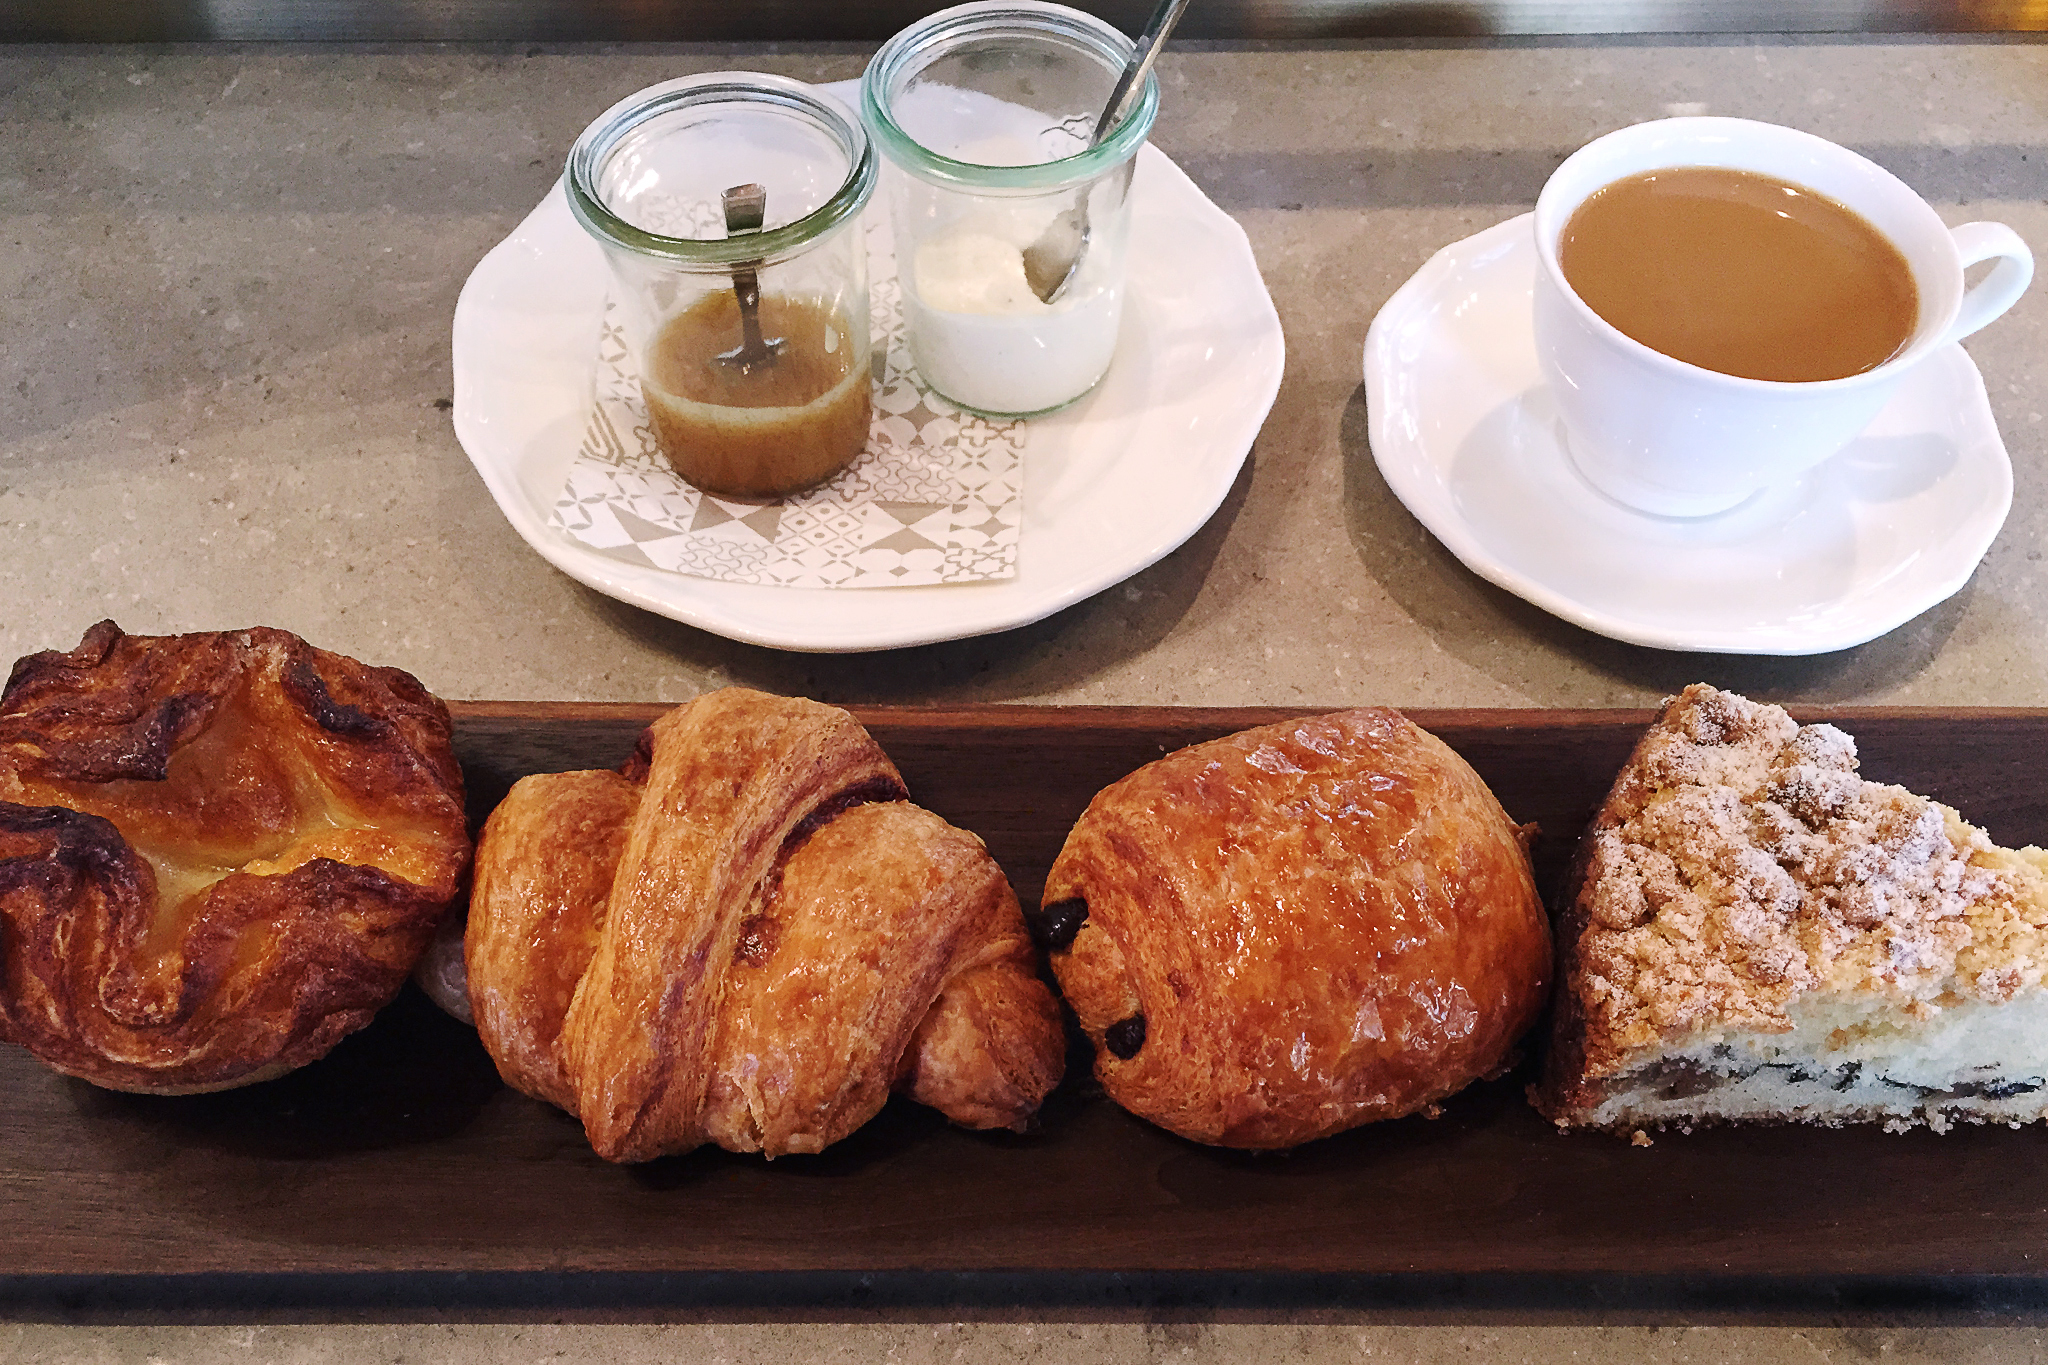 Assorted pastry abbondanza at Nico Osteria Smile at your server, because she selects the four items on your pastry board. While there are zero misses among Amanda Rockman's pastries, you absolutely want yours to include the sweet and crumbly chestnut cof